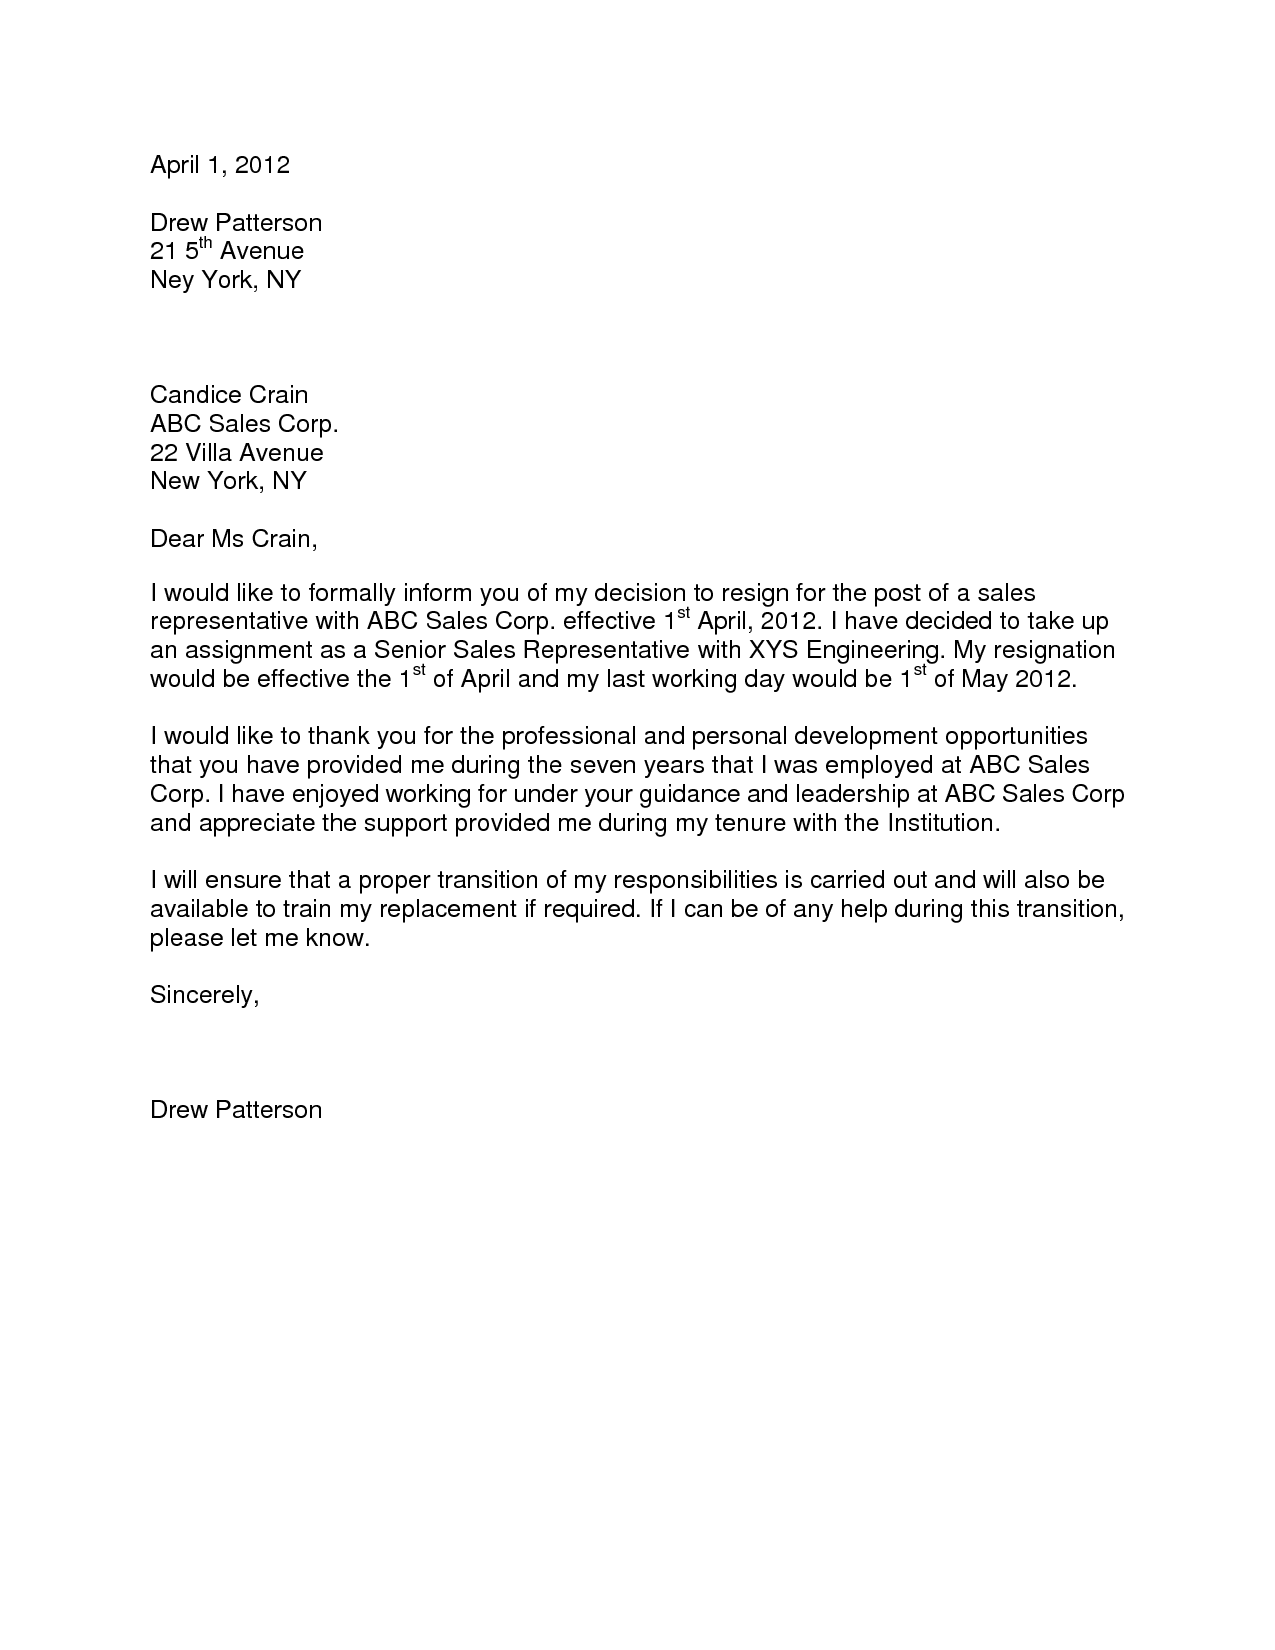 Formal Resignation Letter  Month Notice  Google Search  Lucabon